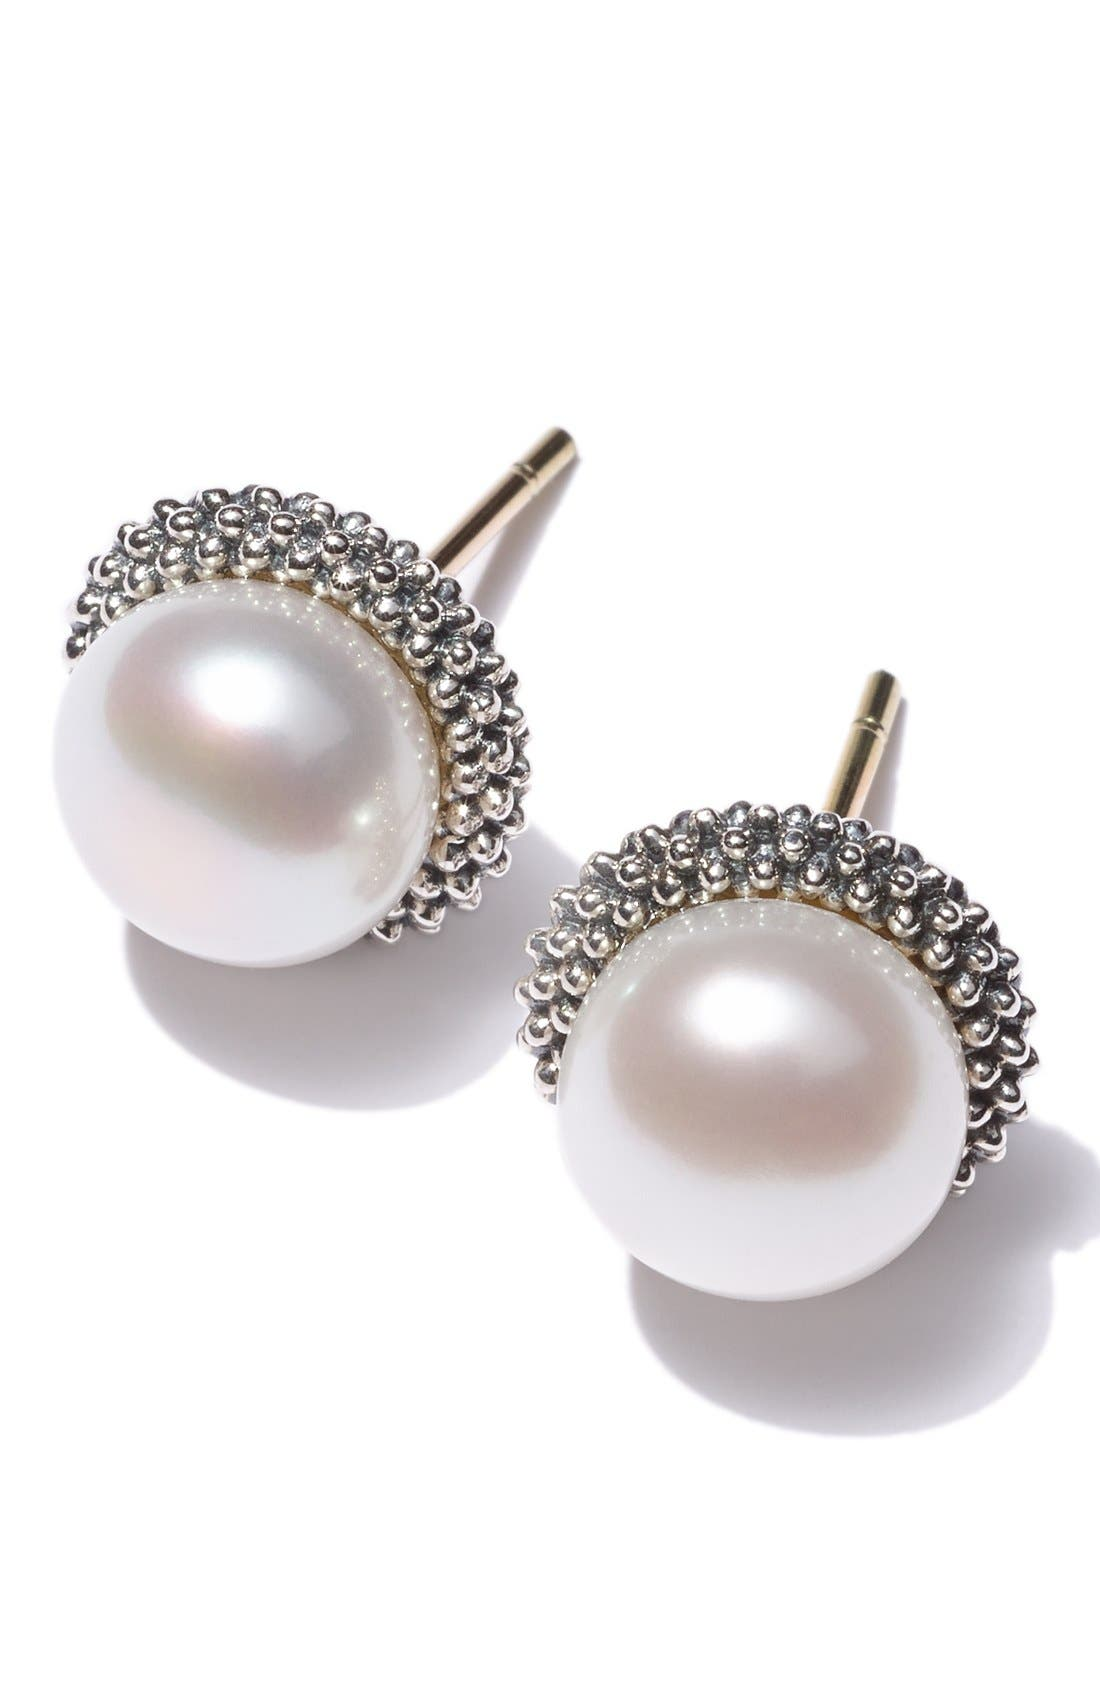 'Luna' Pearl Small Stud Earrings,                             Alternate thumbnail 6, color,                             SILVER/ PEARL